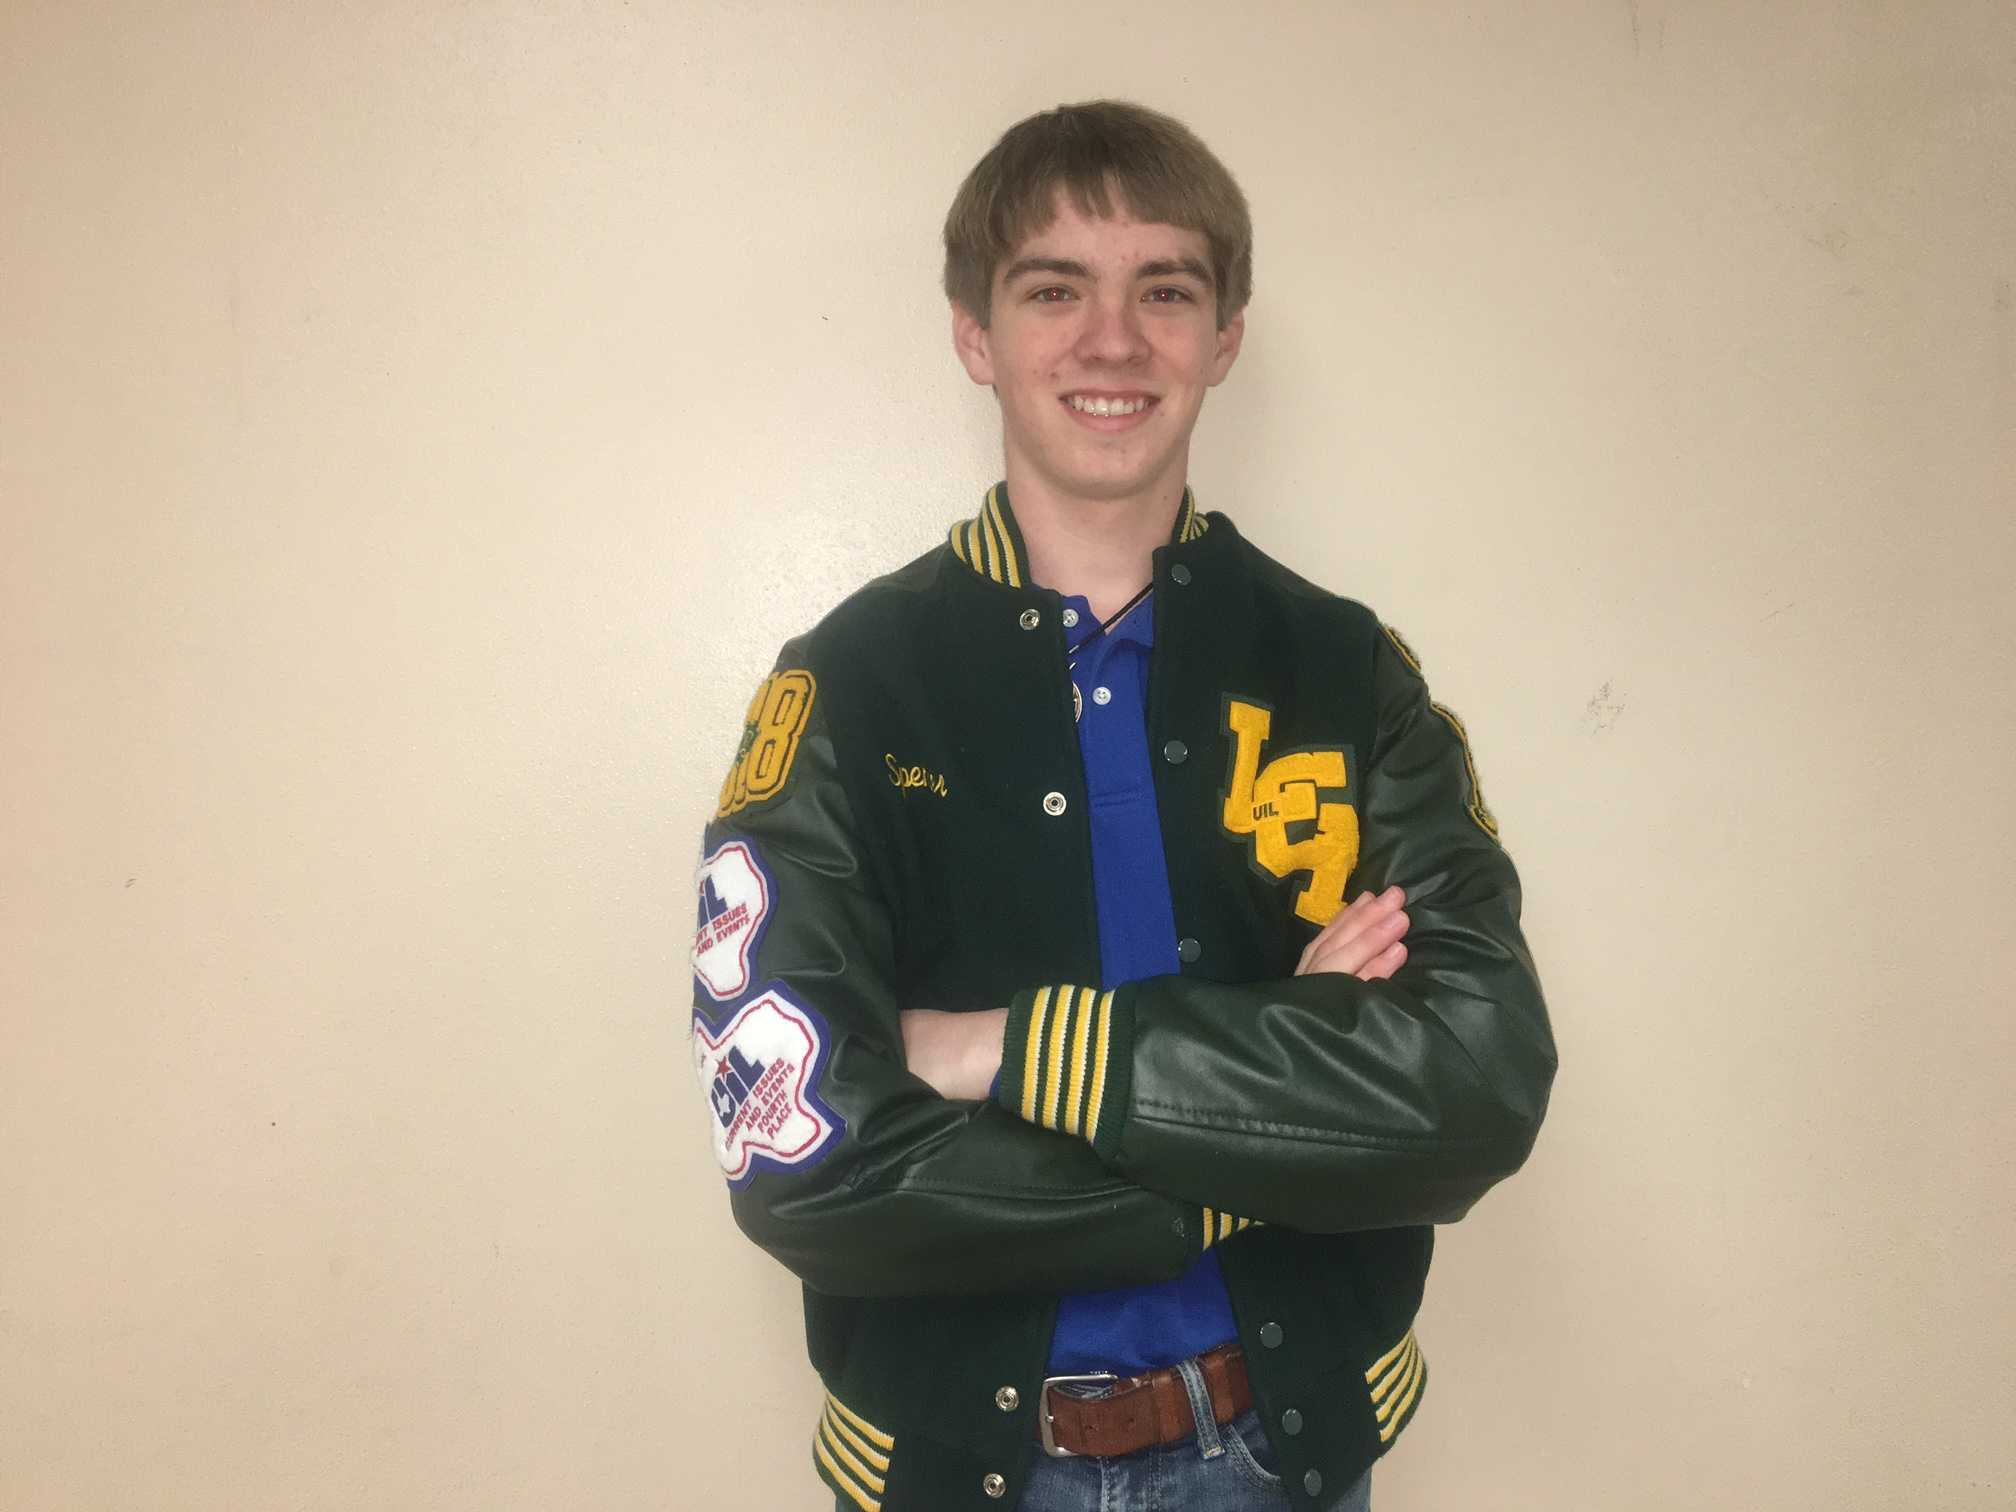 Junior Spencer Johns earned his letterman jacket as a freshman.